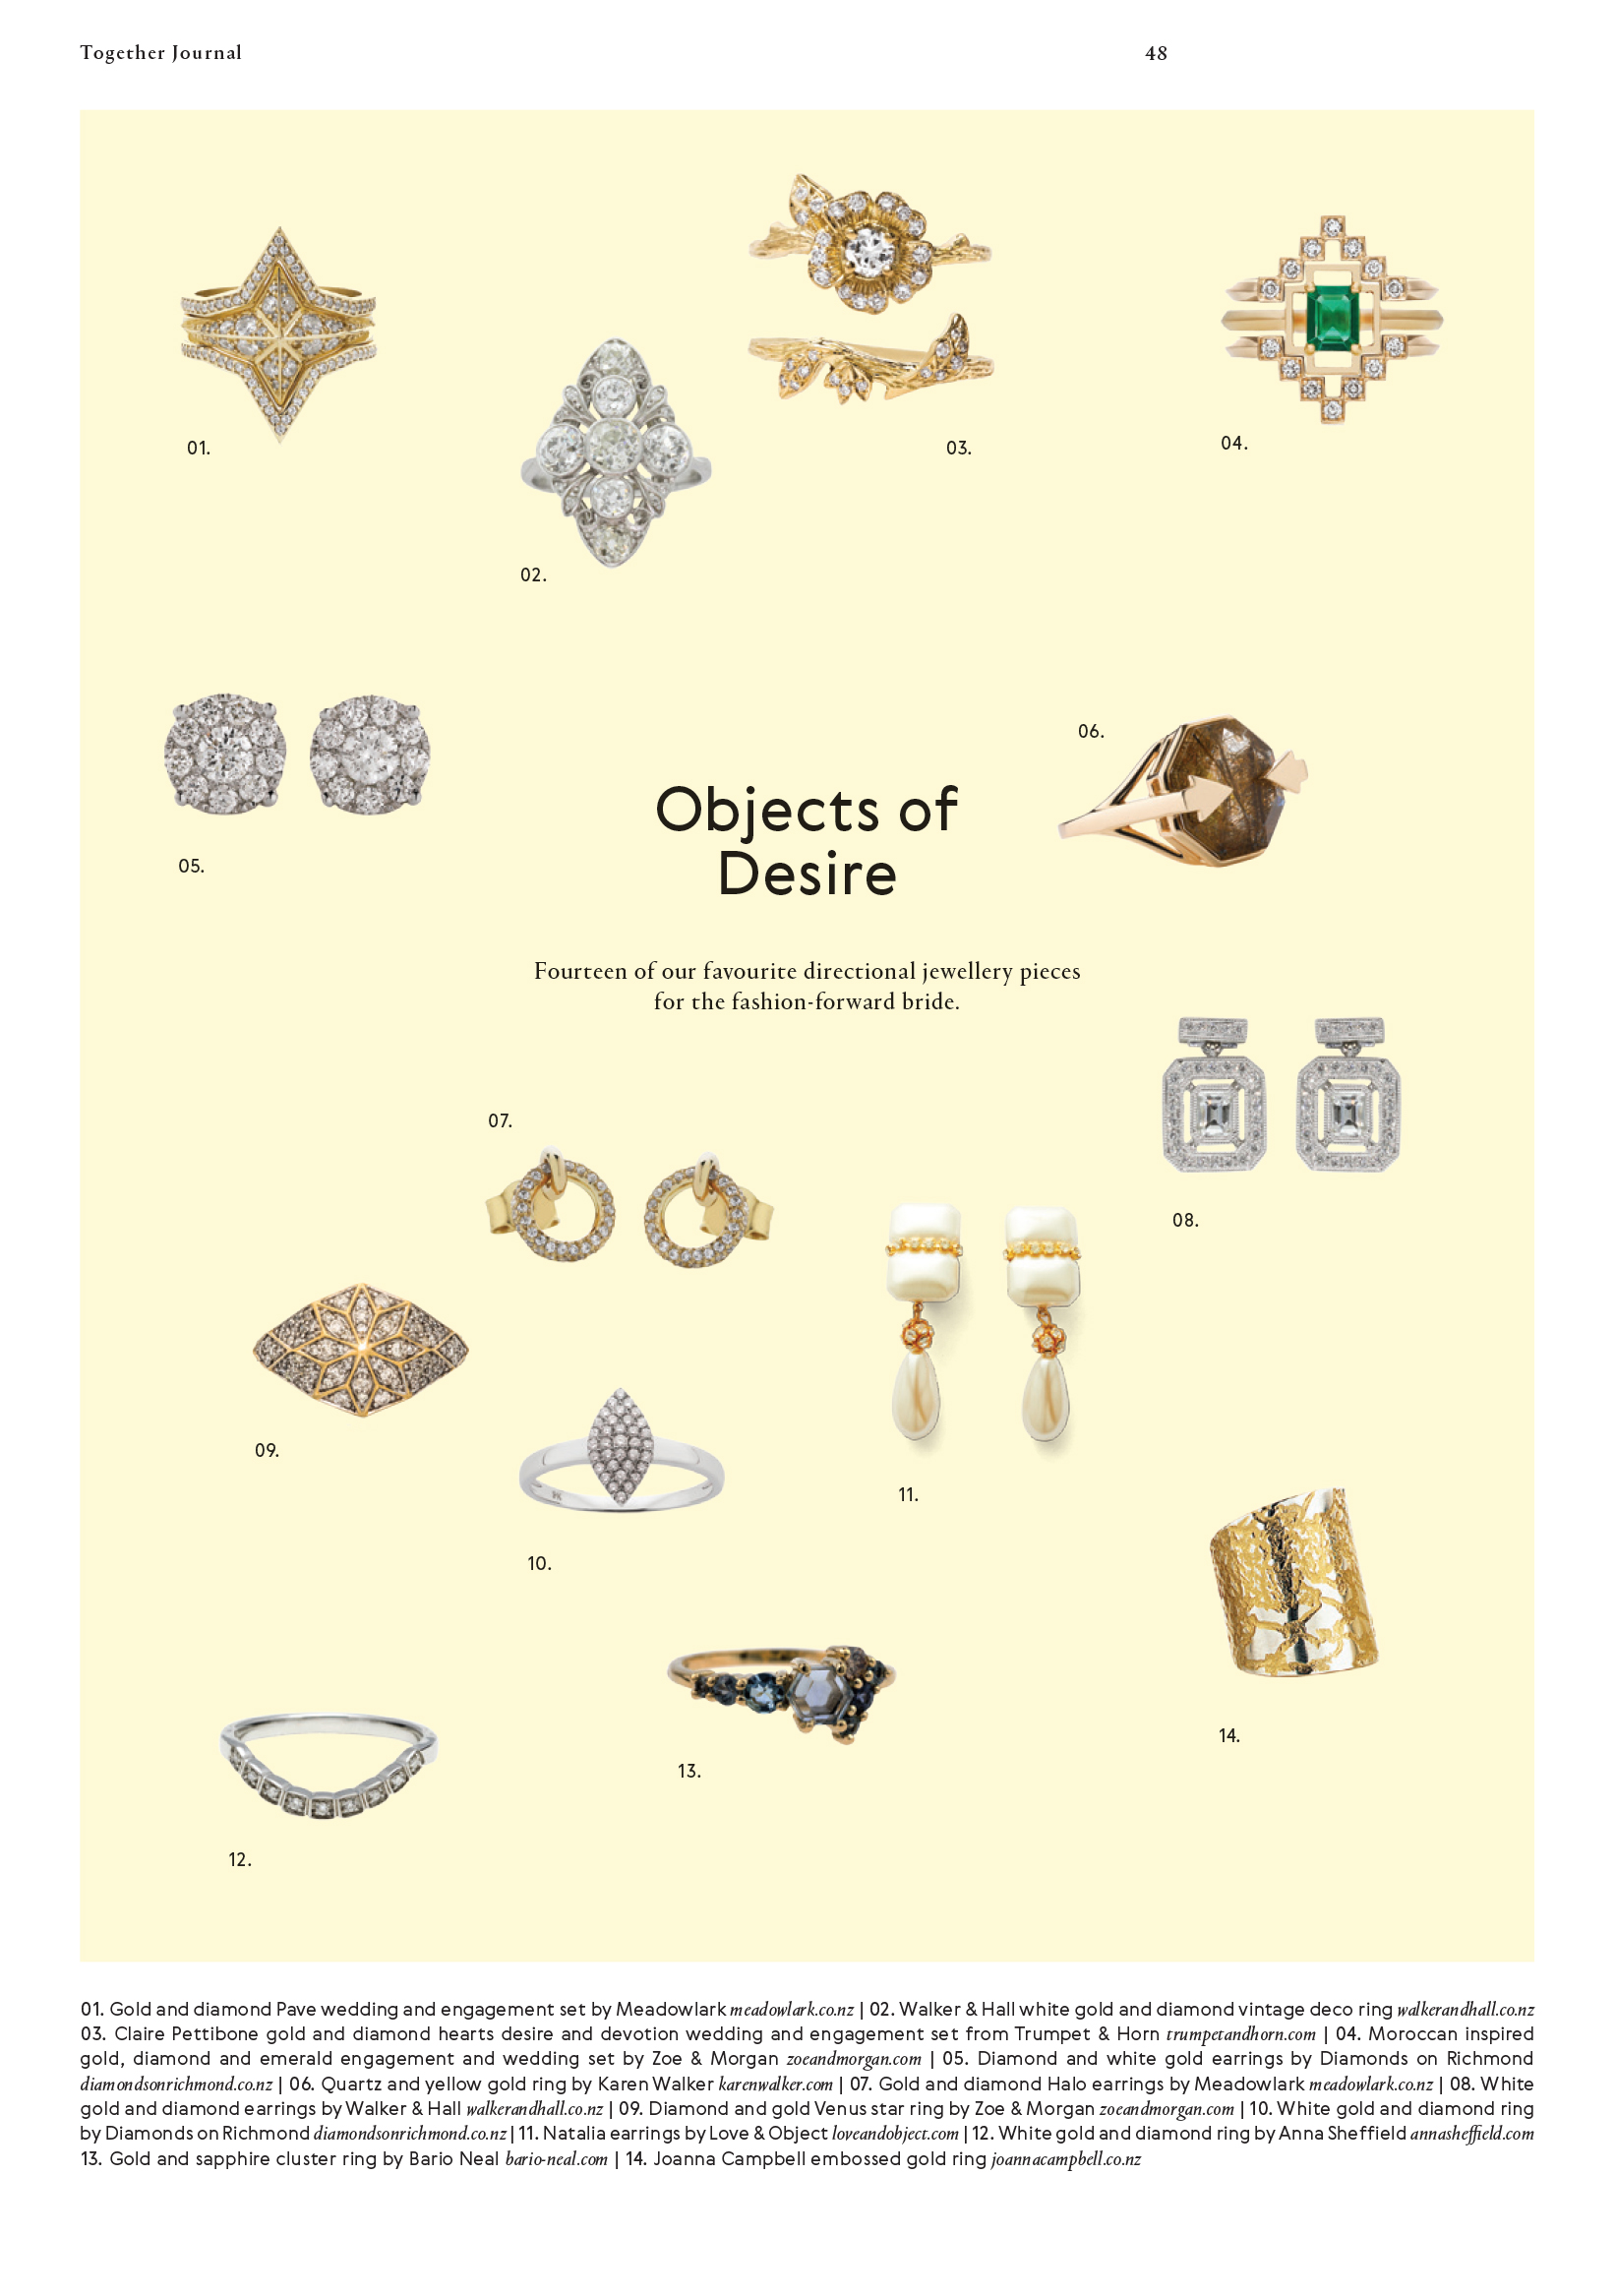 TJ5_048-049_Objects of Desire.pdf